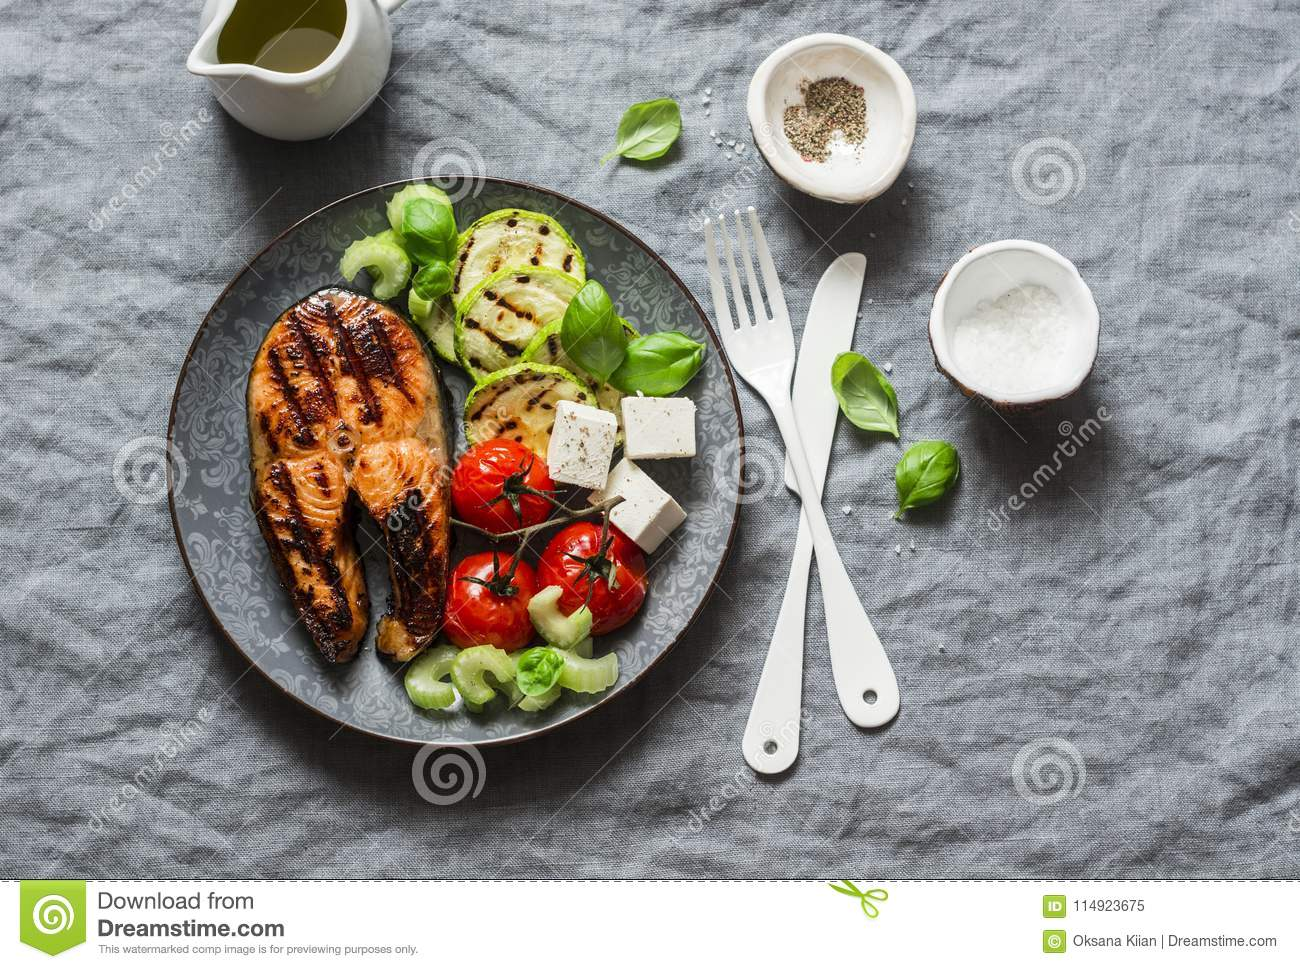 Grilled Salmon Zucchini Baked Cherry Tomatoes And Silky Tofu Healthy Balanced Meal On Grey Background Stock Image Image Of Fish Flat 114923675